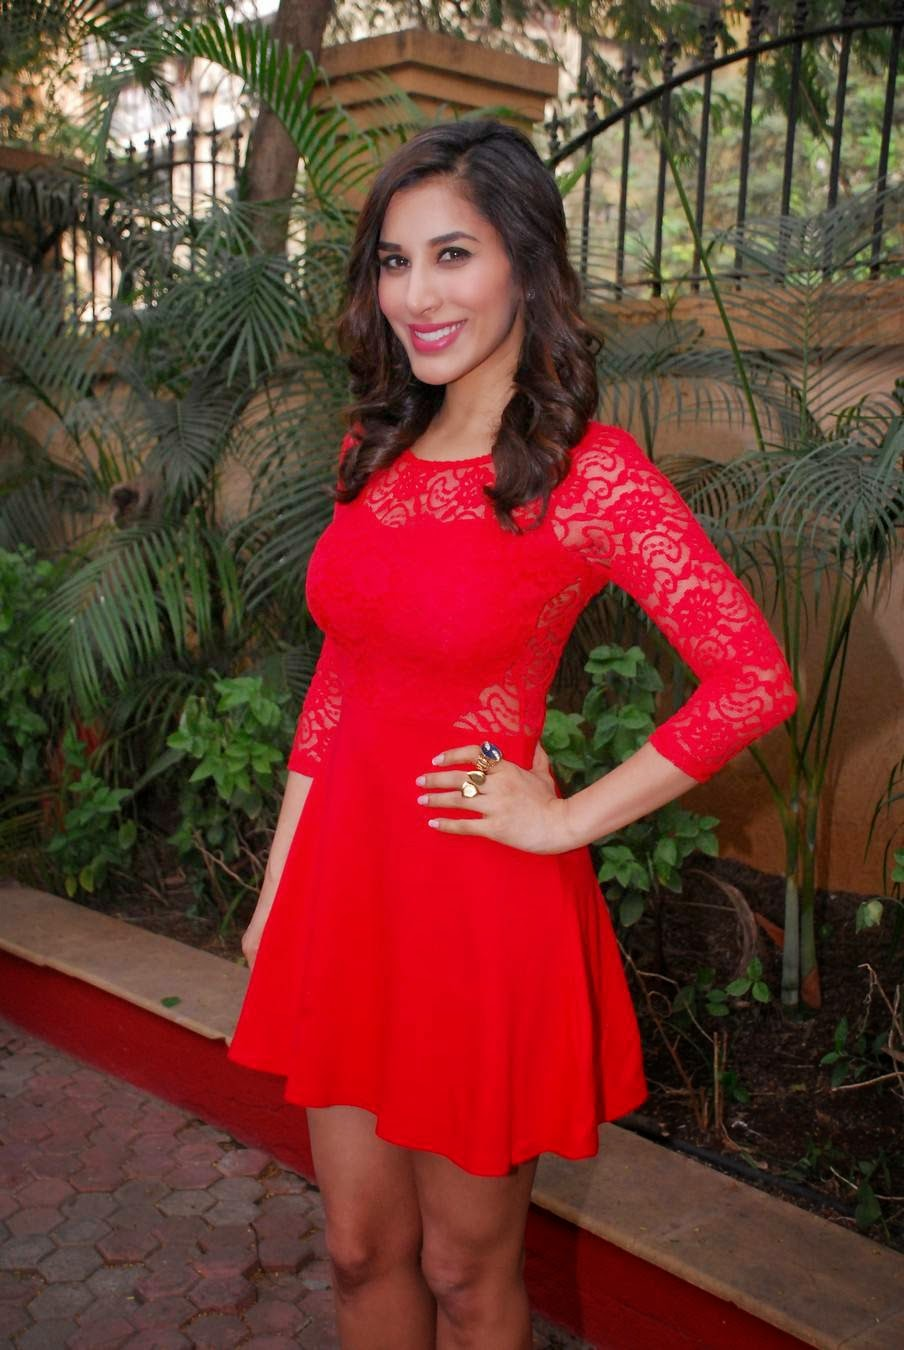 Actress Sophie Choudry Latest Cute Hot Red Mini Skirt Dress Spicy Thighs Show Photos Gallery At Pune CCIL New Year Bash Event Press Meet